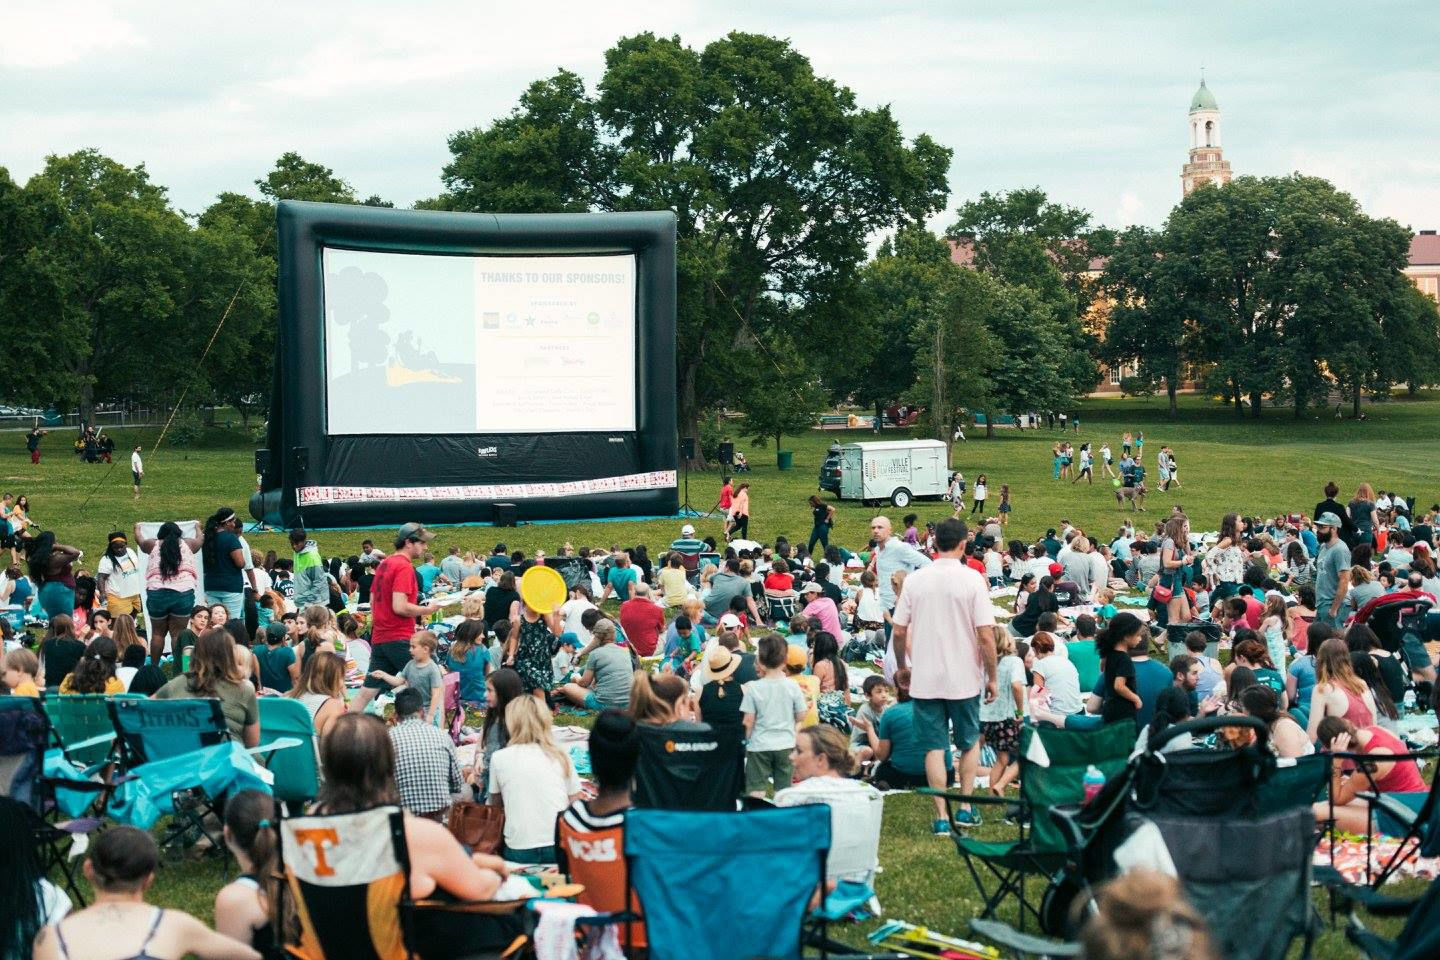 Movies in the Park - Nashville Scene